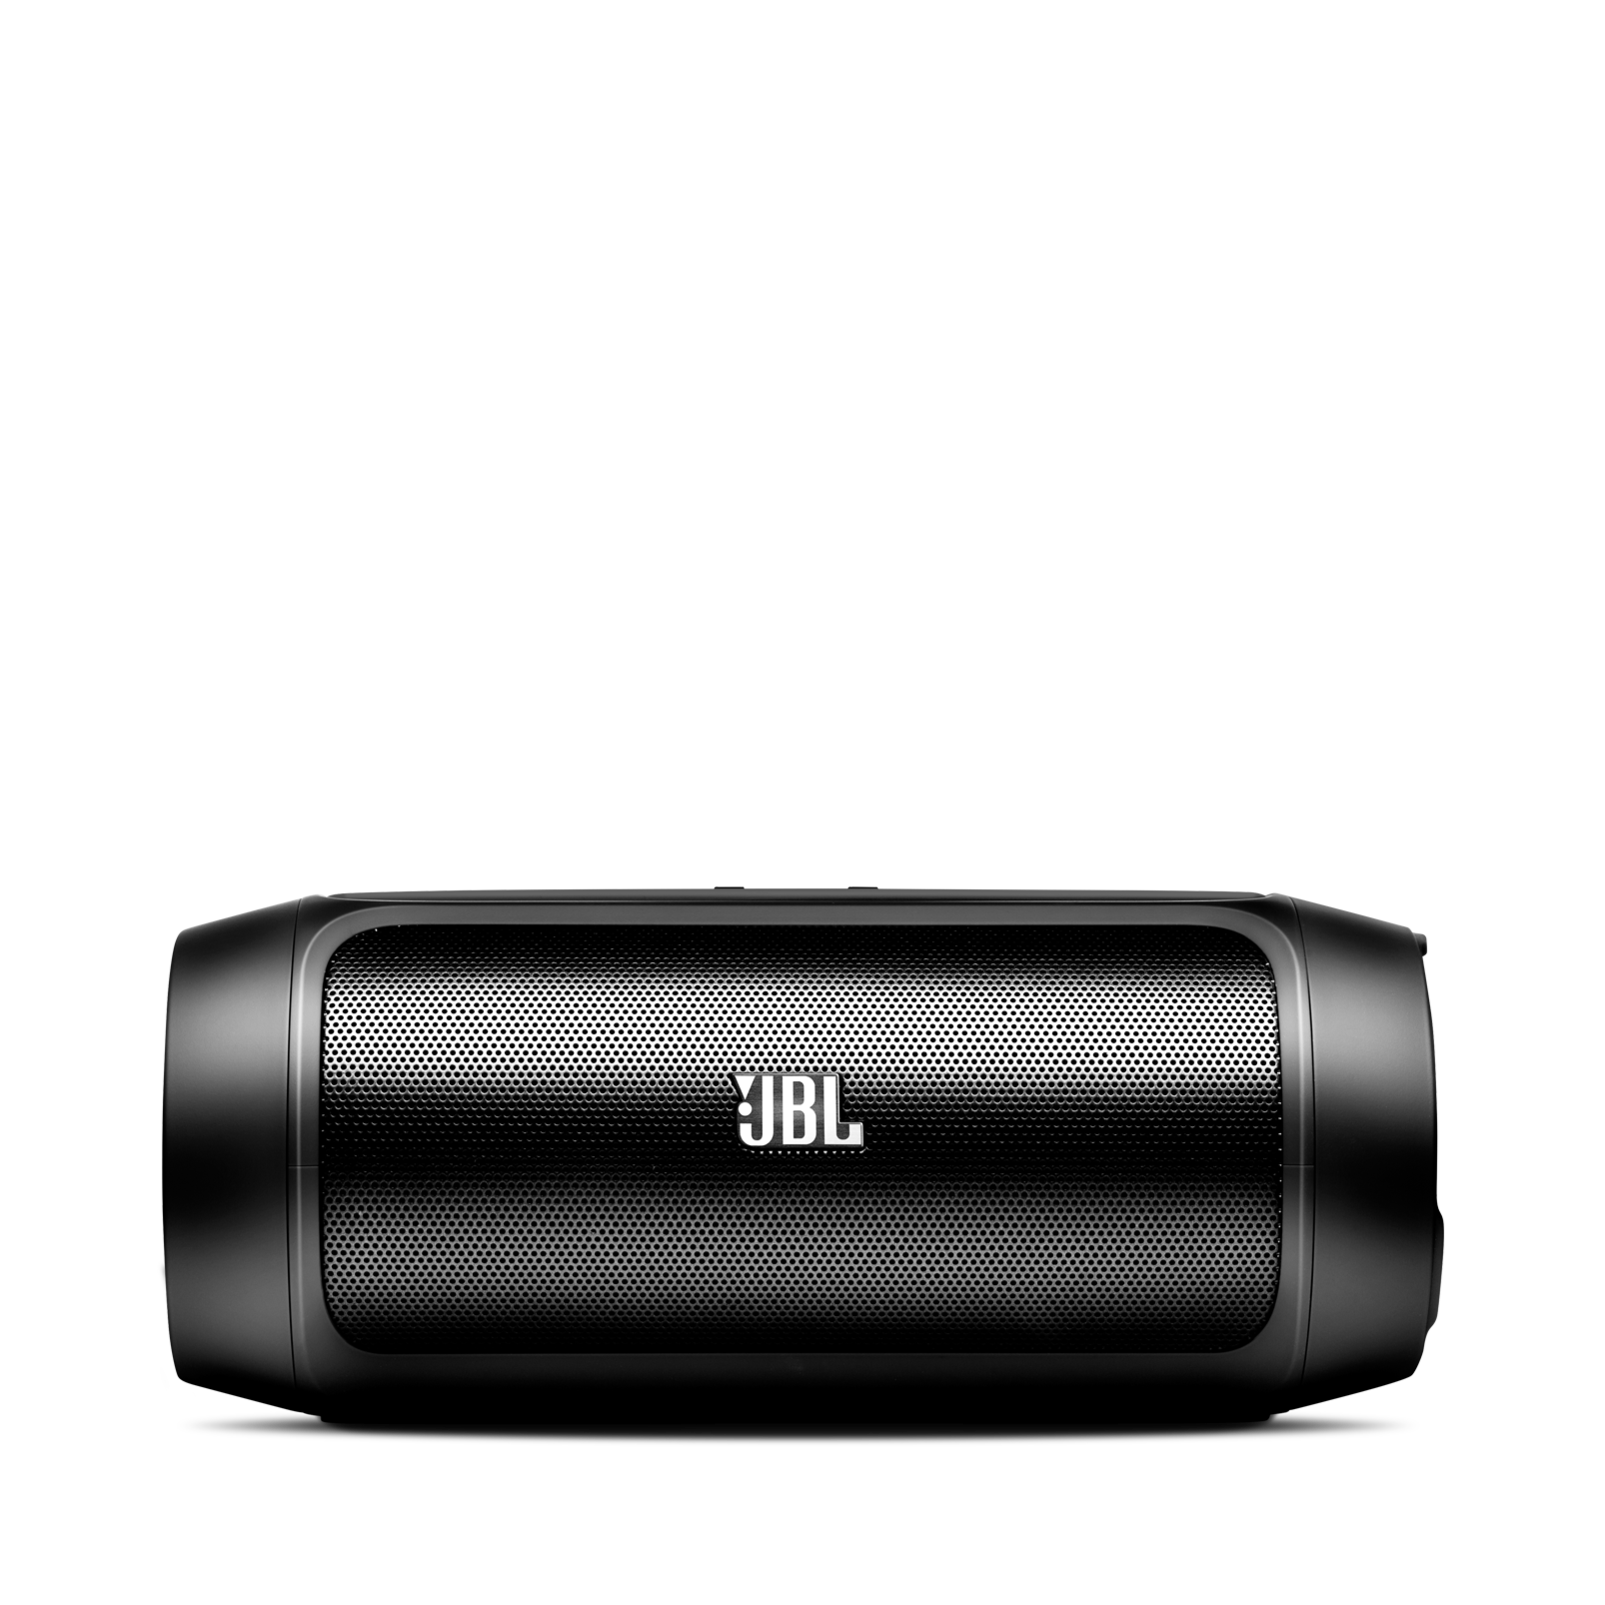 JBL Charge 2 - Black - Portable Bluetooth speaker with massive battery to charge your devices - Front